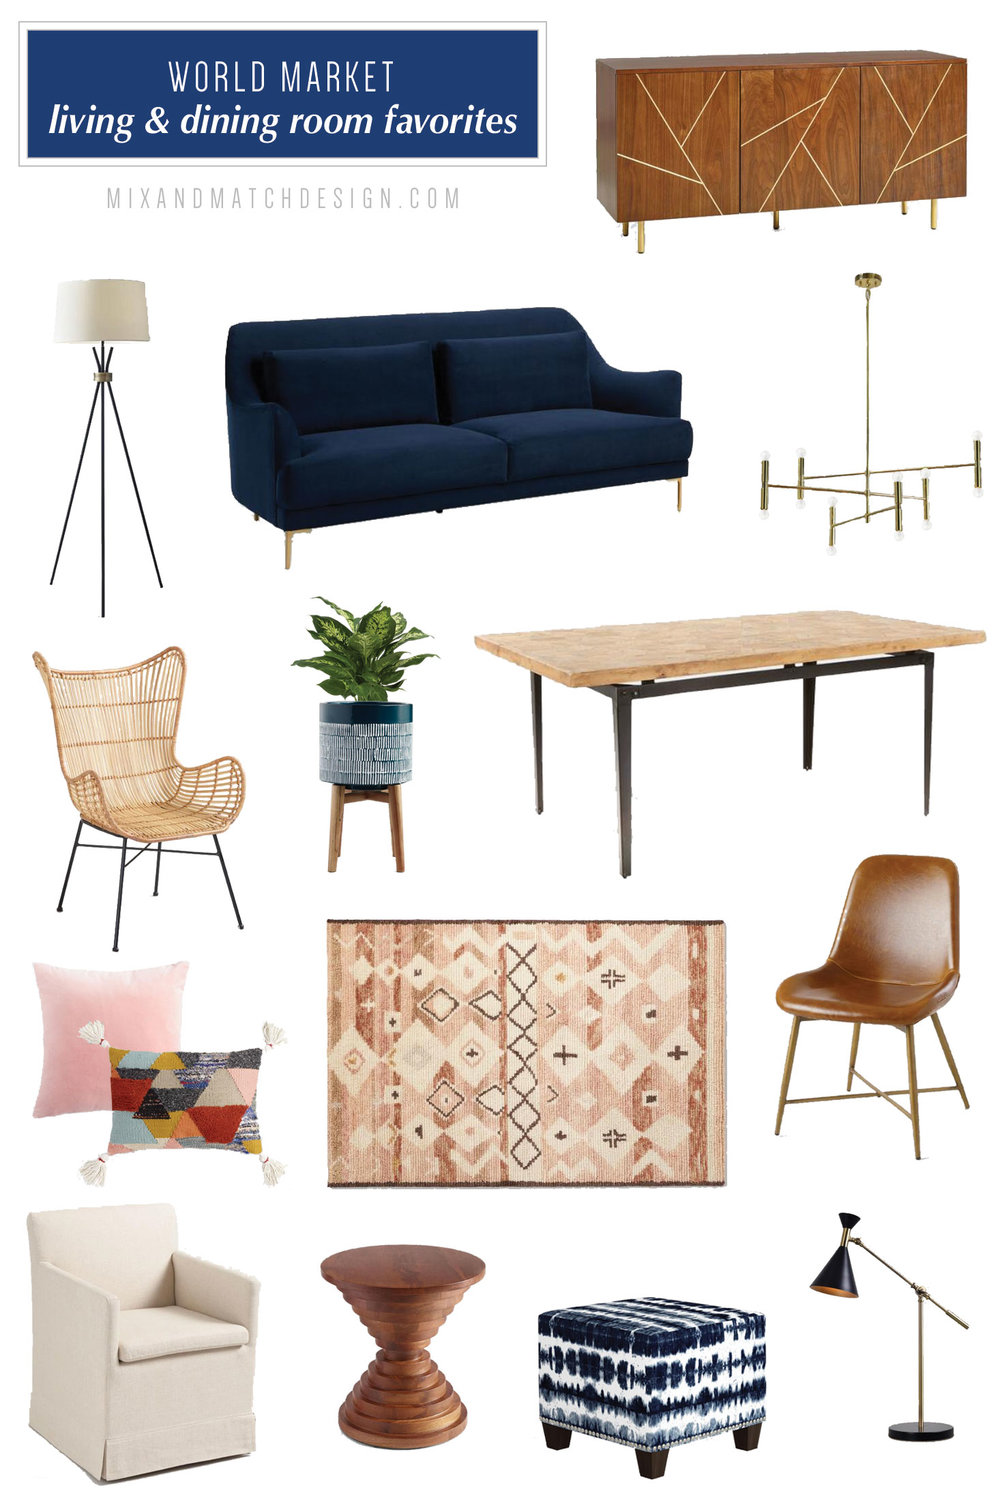 World Market is one of my favorite places to shop for global, mid-century, and eclectic furniture and decor, and I've rounded up a bunch of my favorites for your living and dining rooms to share with you! // #designerfinds #interiordesign #decor #eclecticdecor #globaldecor #decorating